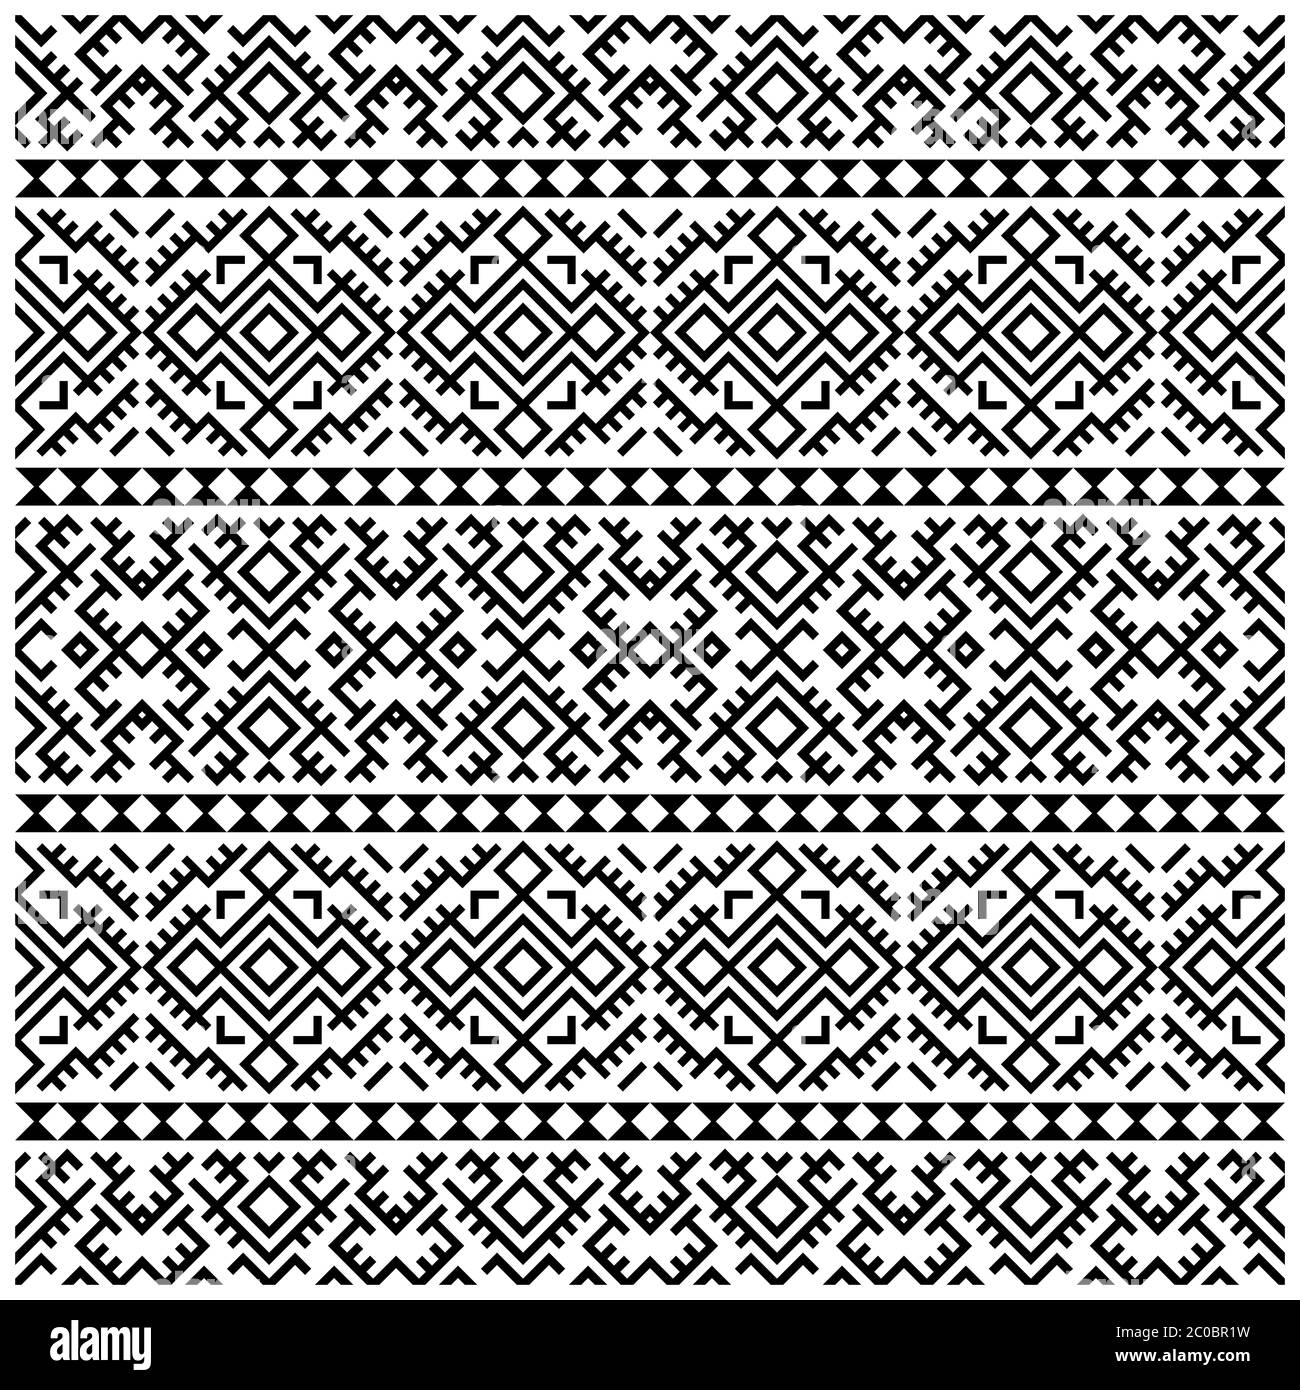 Seamless Ethnic Pattern Persian Design Vector Illustration Of Ornament Pattern Design In Black White Color Stock Photo Alamy